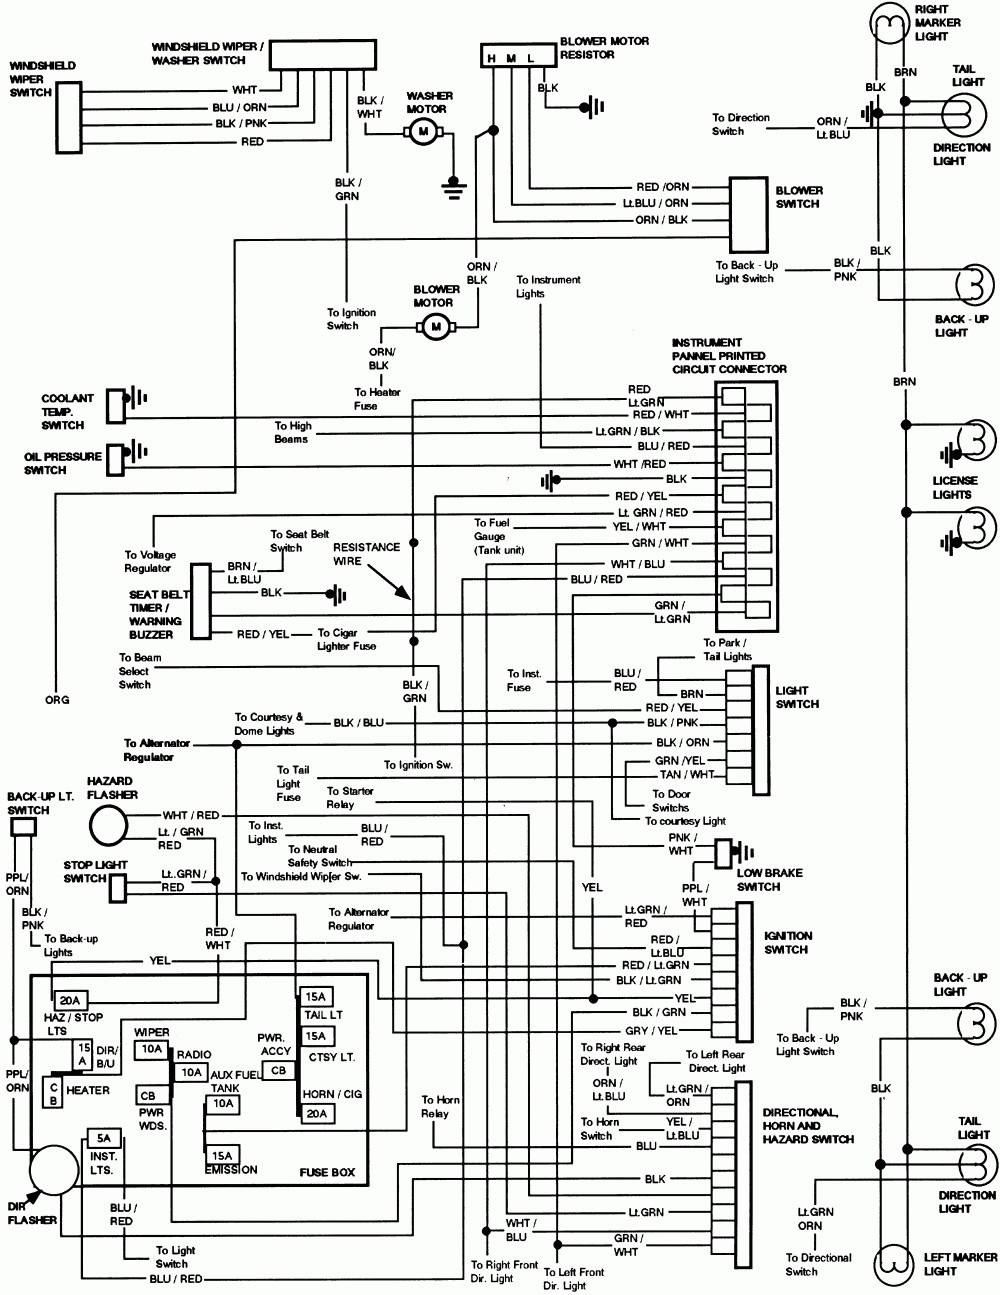 medium resolution of 1996 ford f150 wiring diagrams blog wiring diagram wiring diagram for 1996 ford f150 ecm